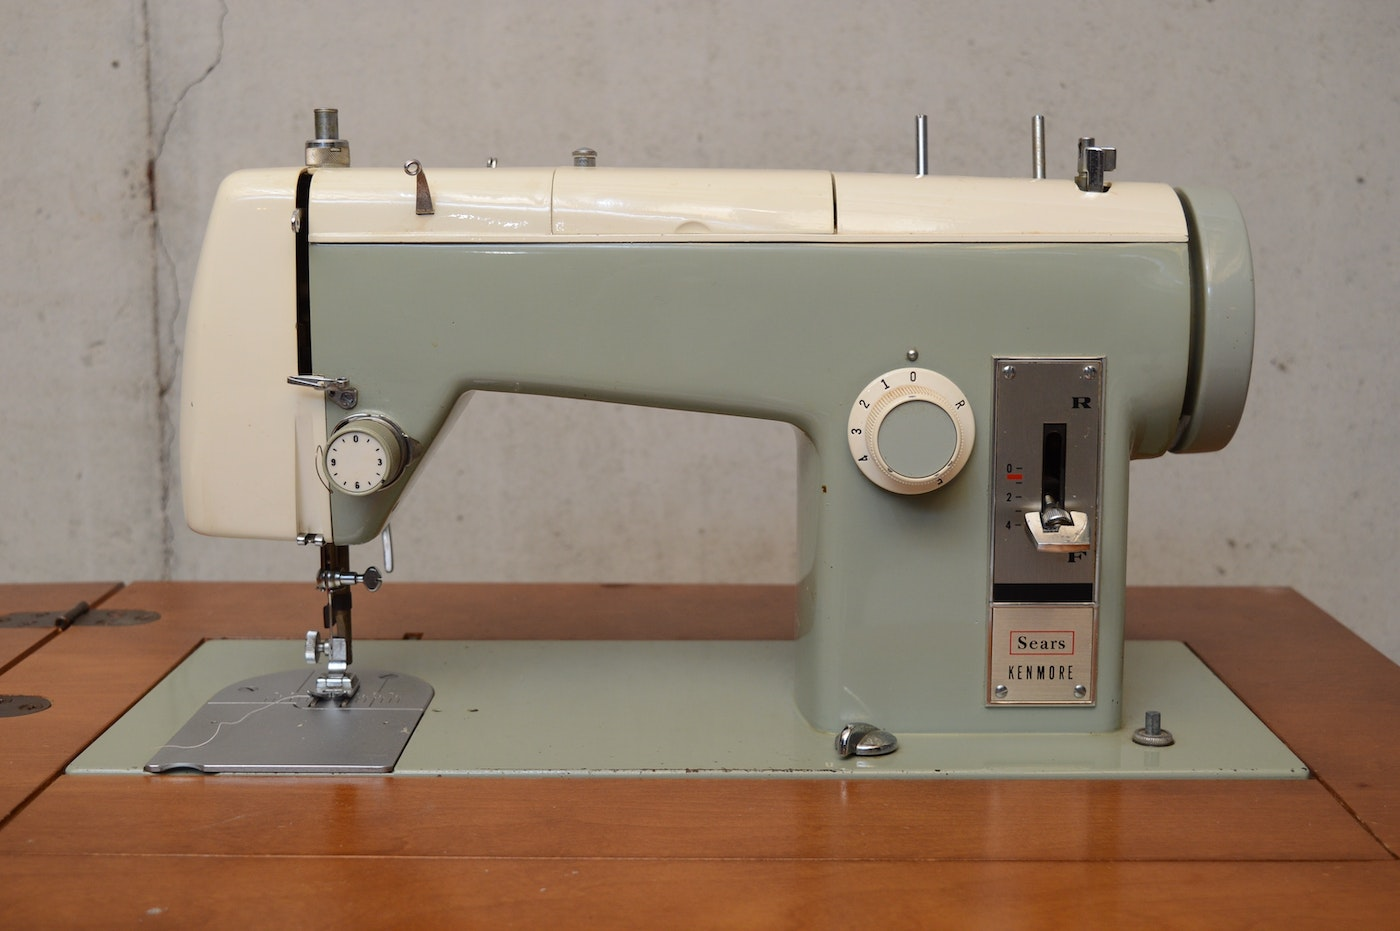 Sears Kenmore Model 2142 Sewing Machine with Cabinet | EBTH